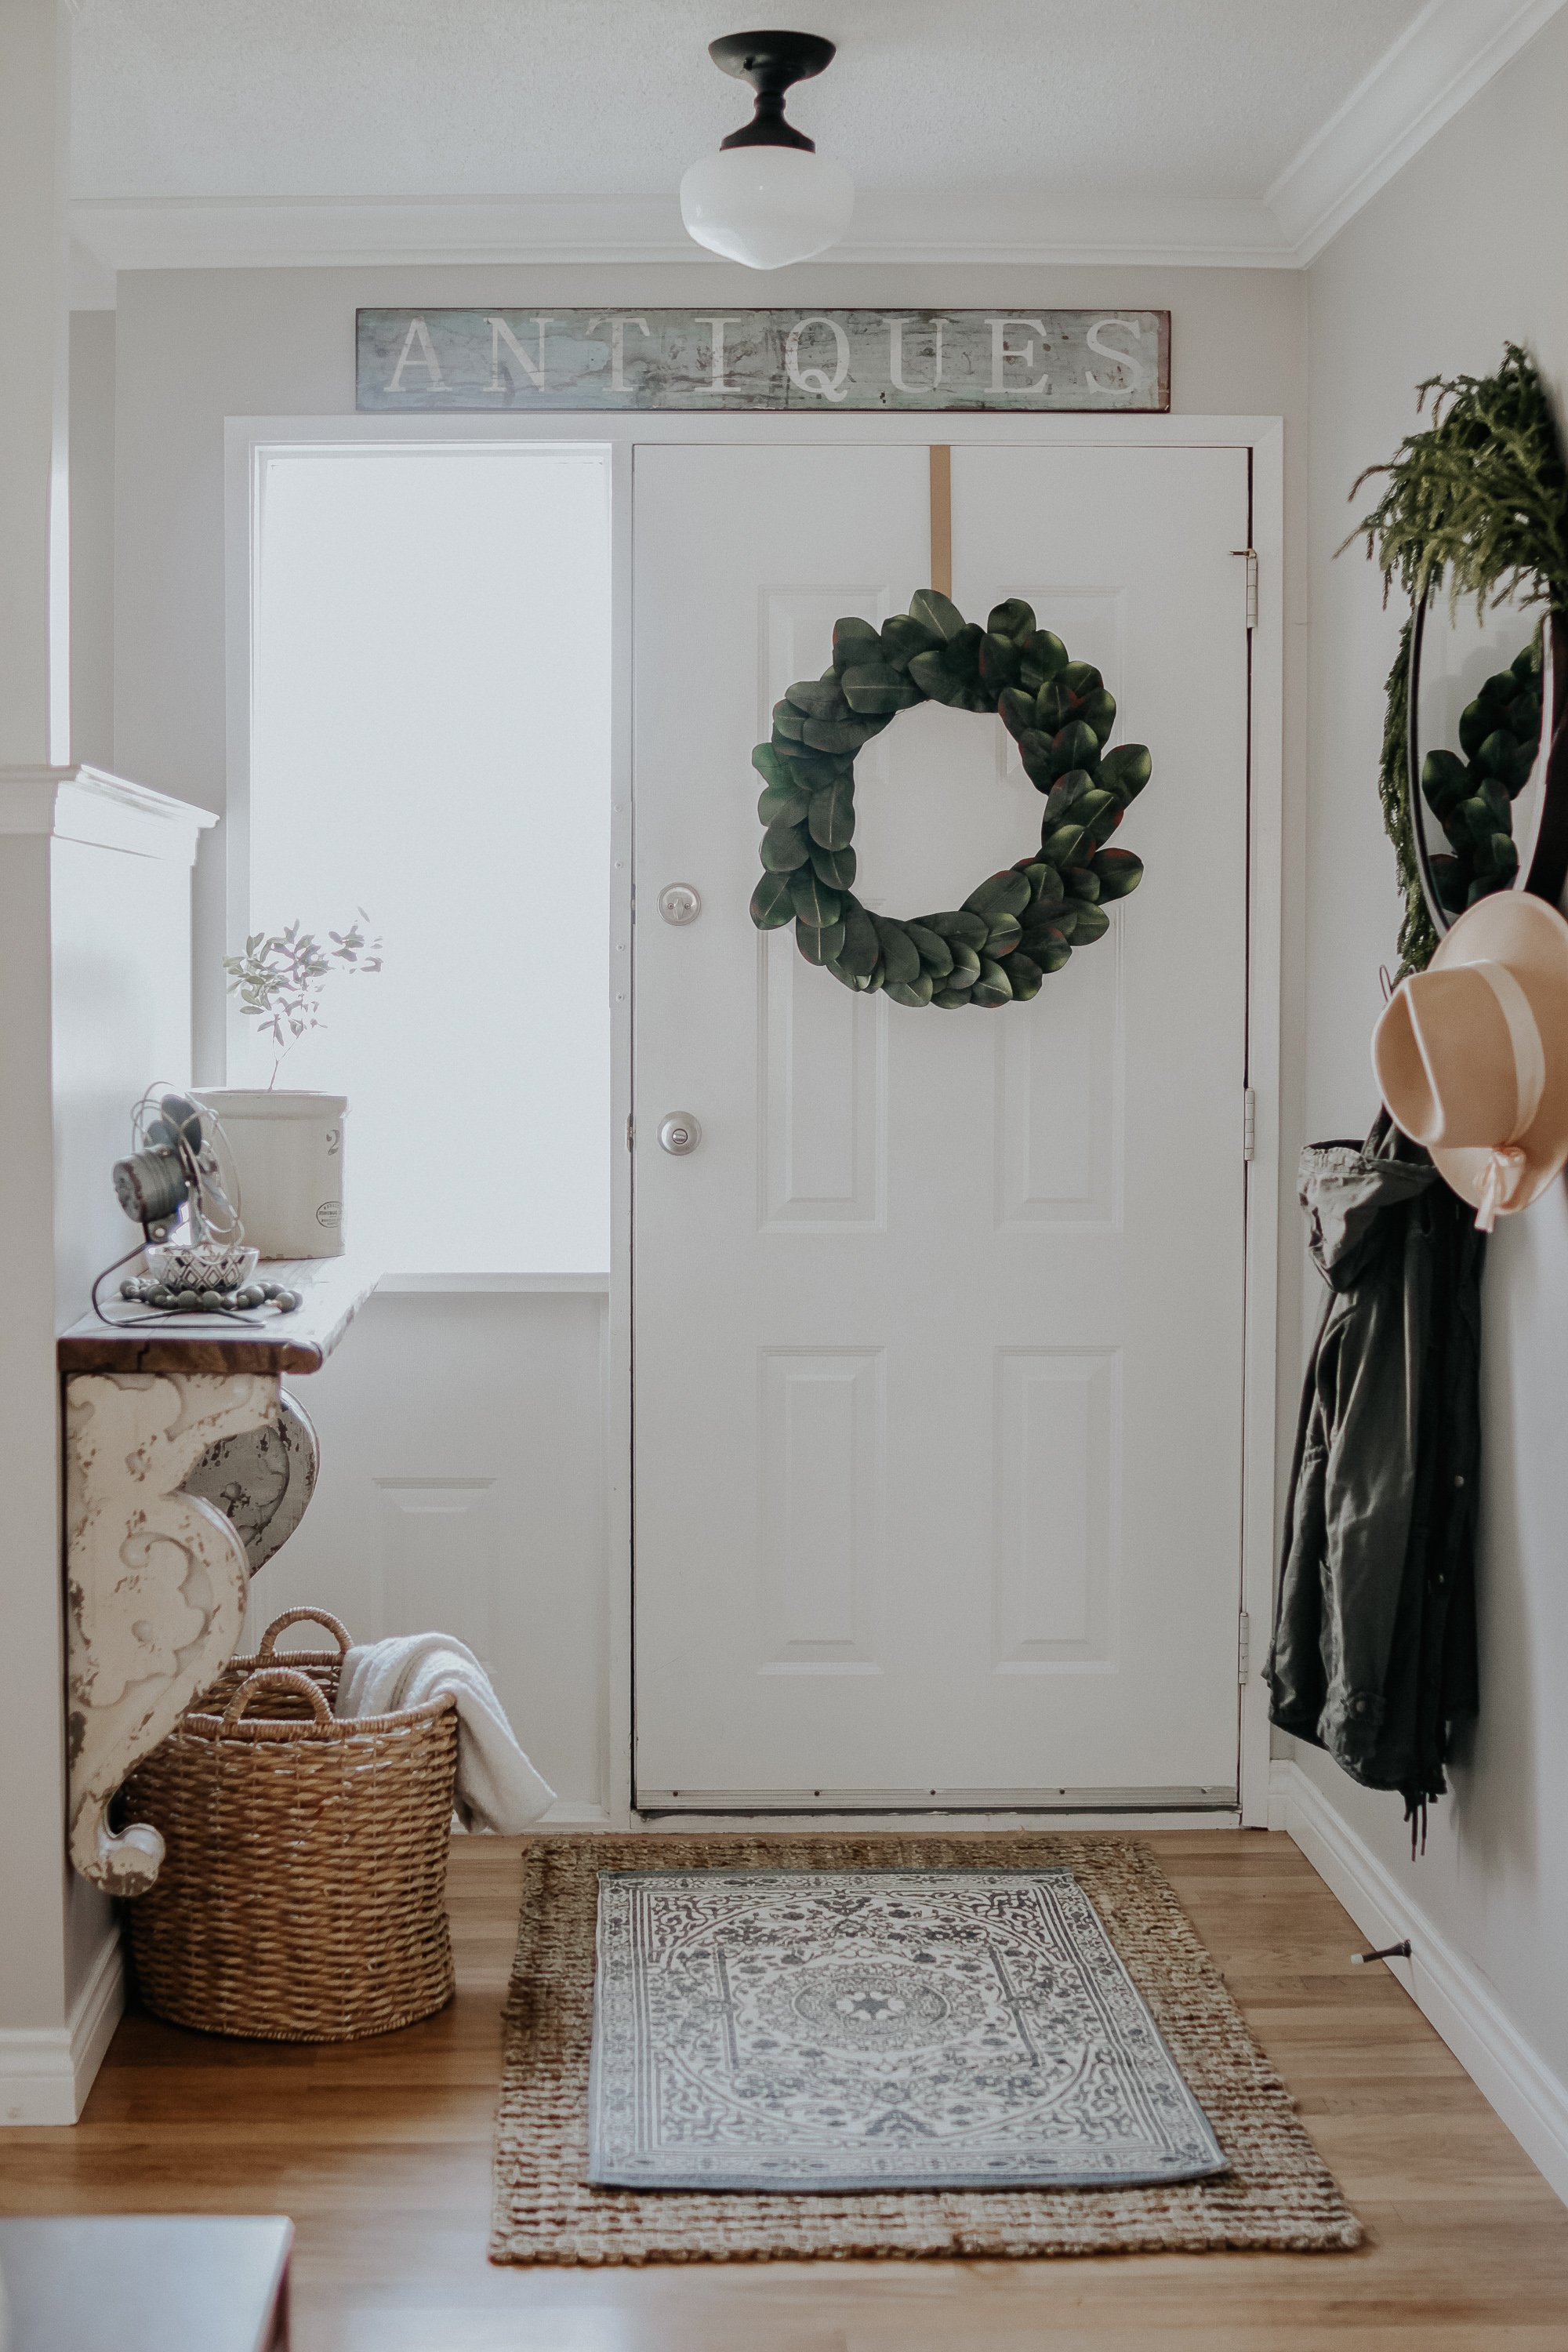 How To Decorate A Small Entrance with limited money and space. How I decorated our little entrance way in our small rancher for free. Key Factors to make your entrance way beautiful and inviting.